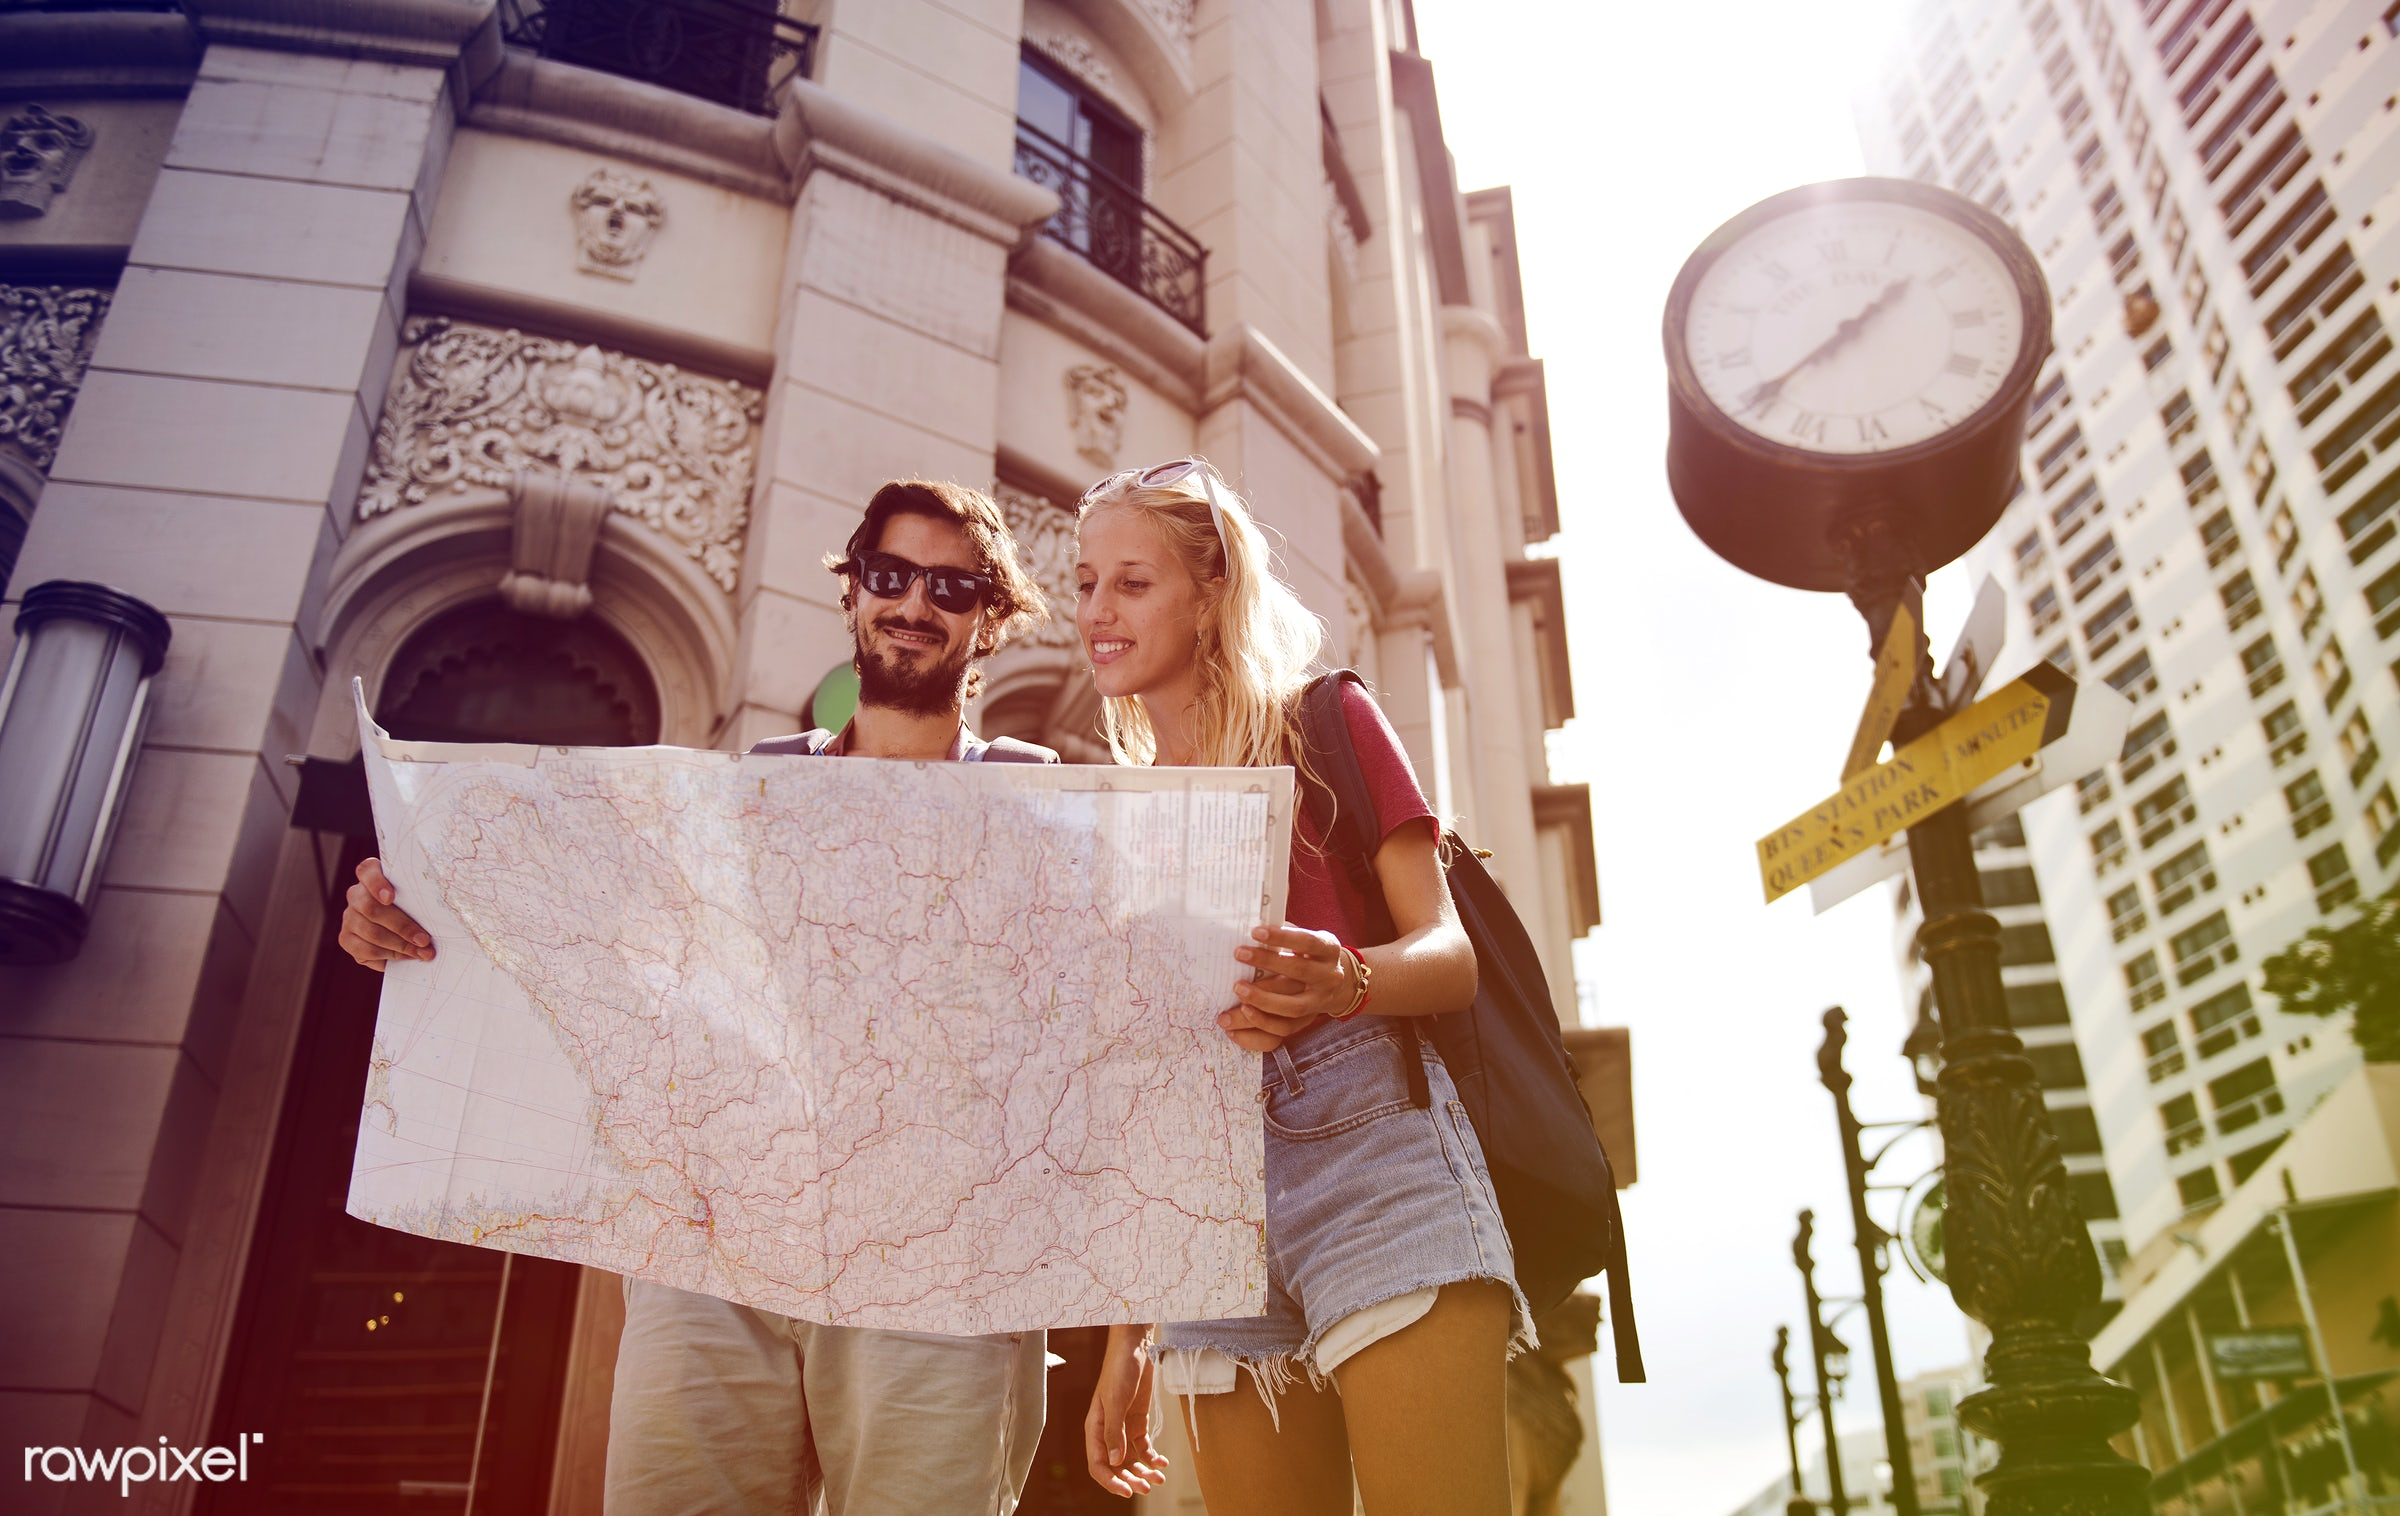 metropolis, backpackers, faded, vibrant, travel, people, together, wanderlust, city, center, woman, blend, buildings,...